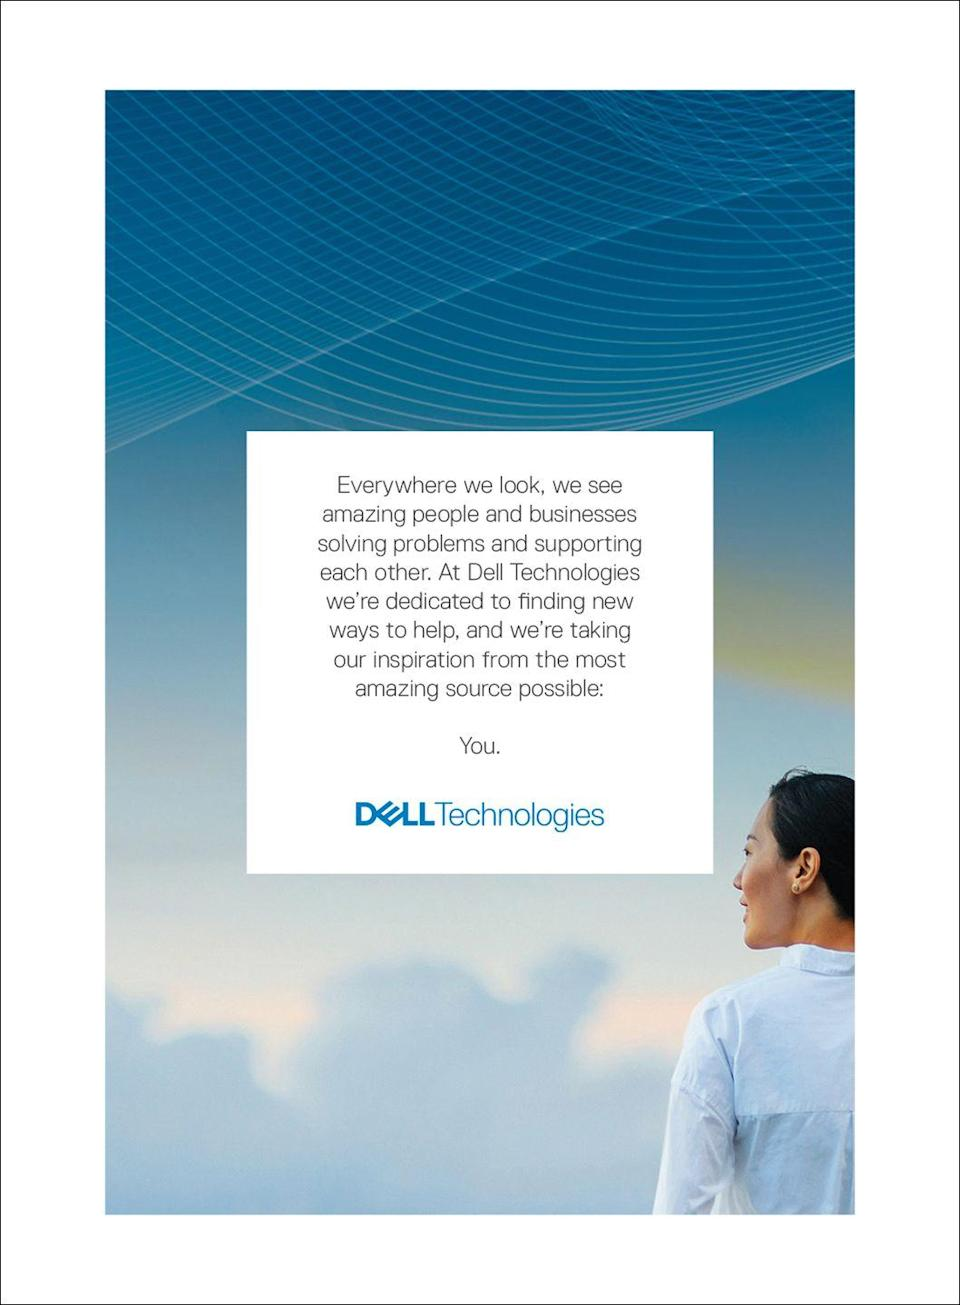 <p>Everywhere we look, we see amazing people and businesses solving problems and supporting each other. At Dell Technologies we're dedicated to finding new ways to help, and we're taking our inspiration from the most amazing source possible: You.</p>